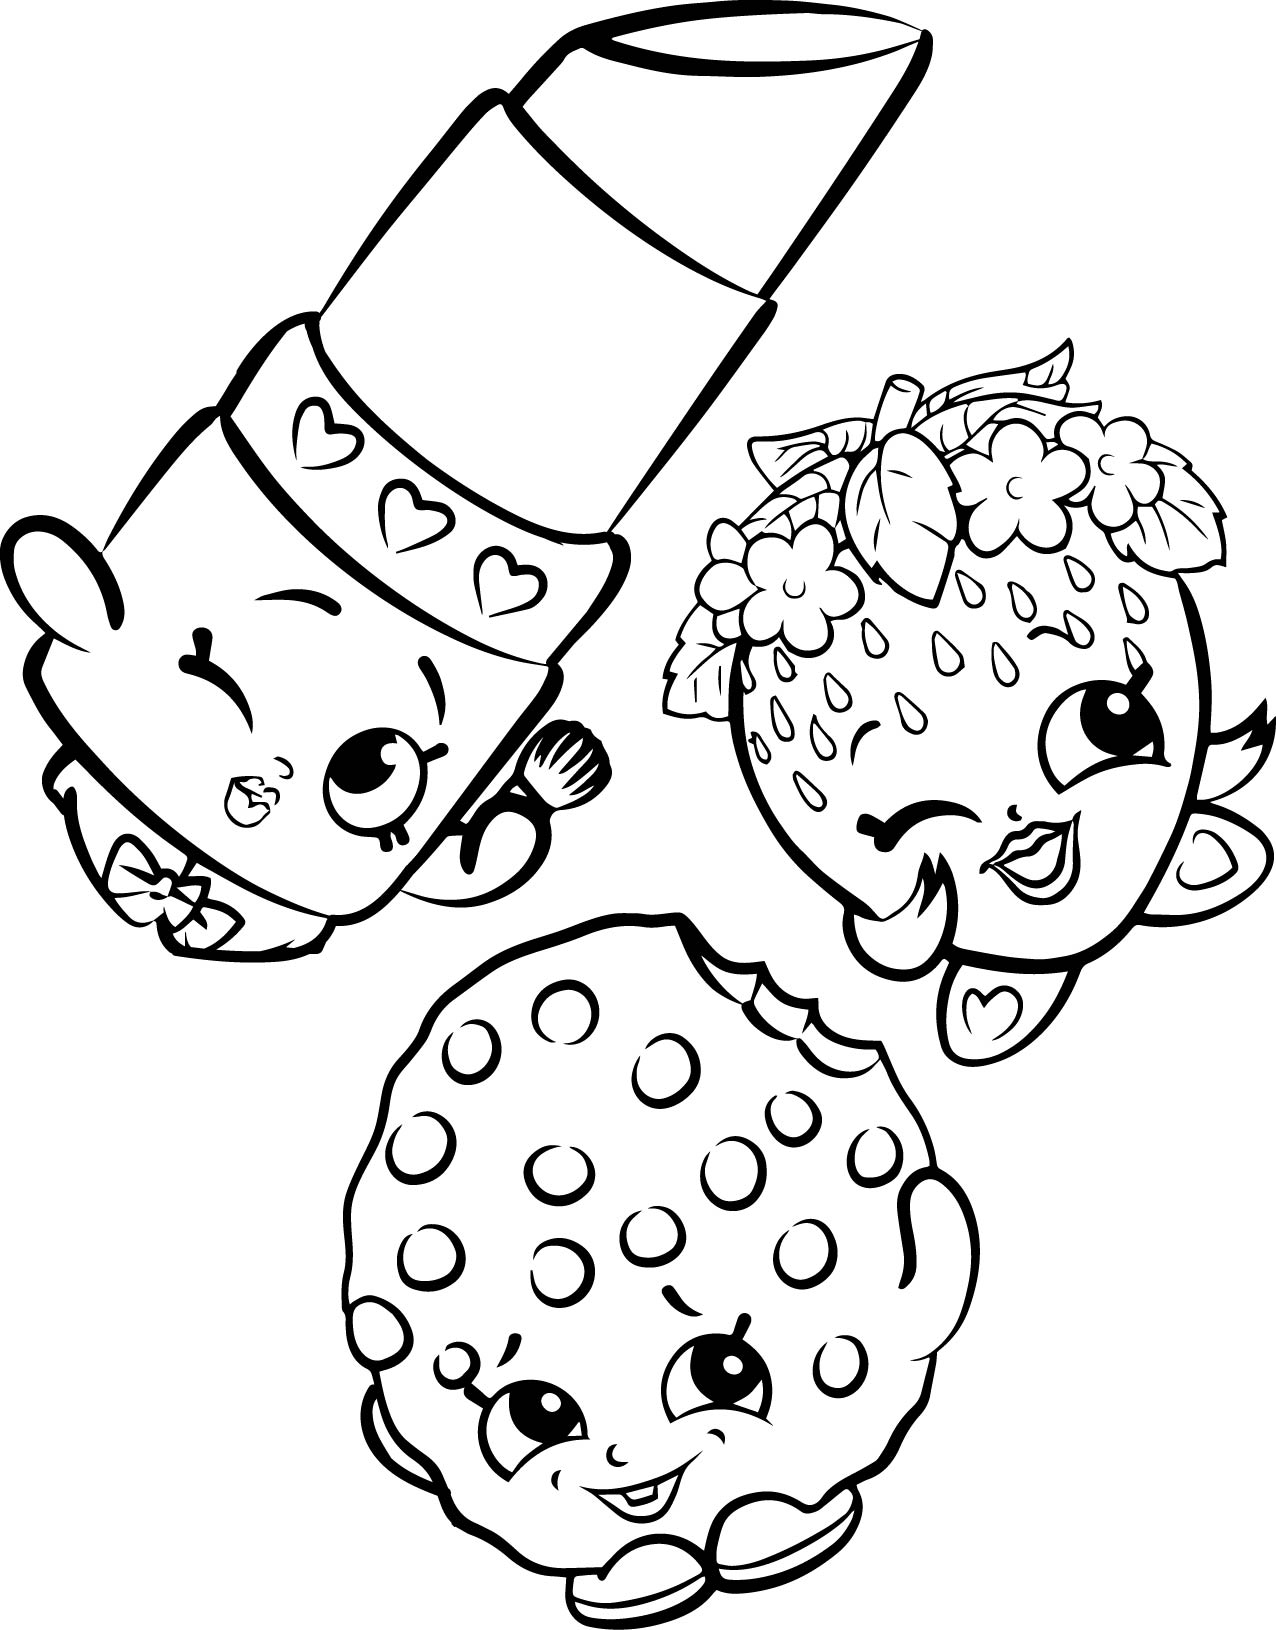 graphic about Free Printable Shopkins Coloring Pages titled Shopkins Coloring Web pages - Ideal Coloring Webpages For Children